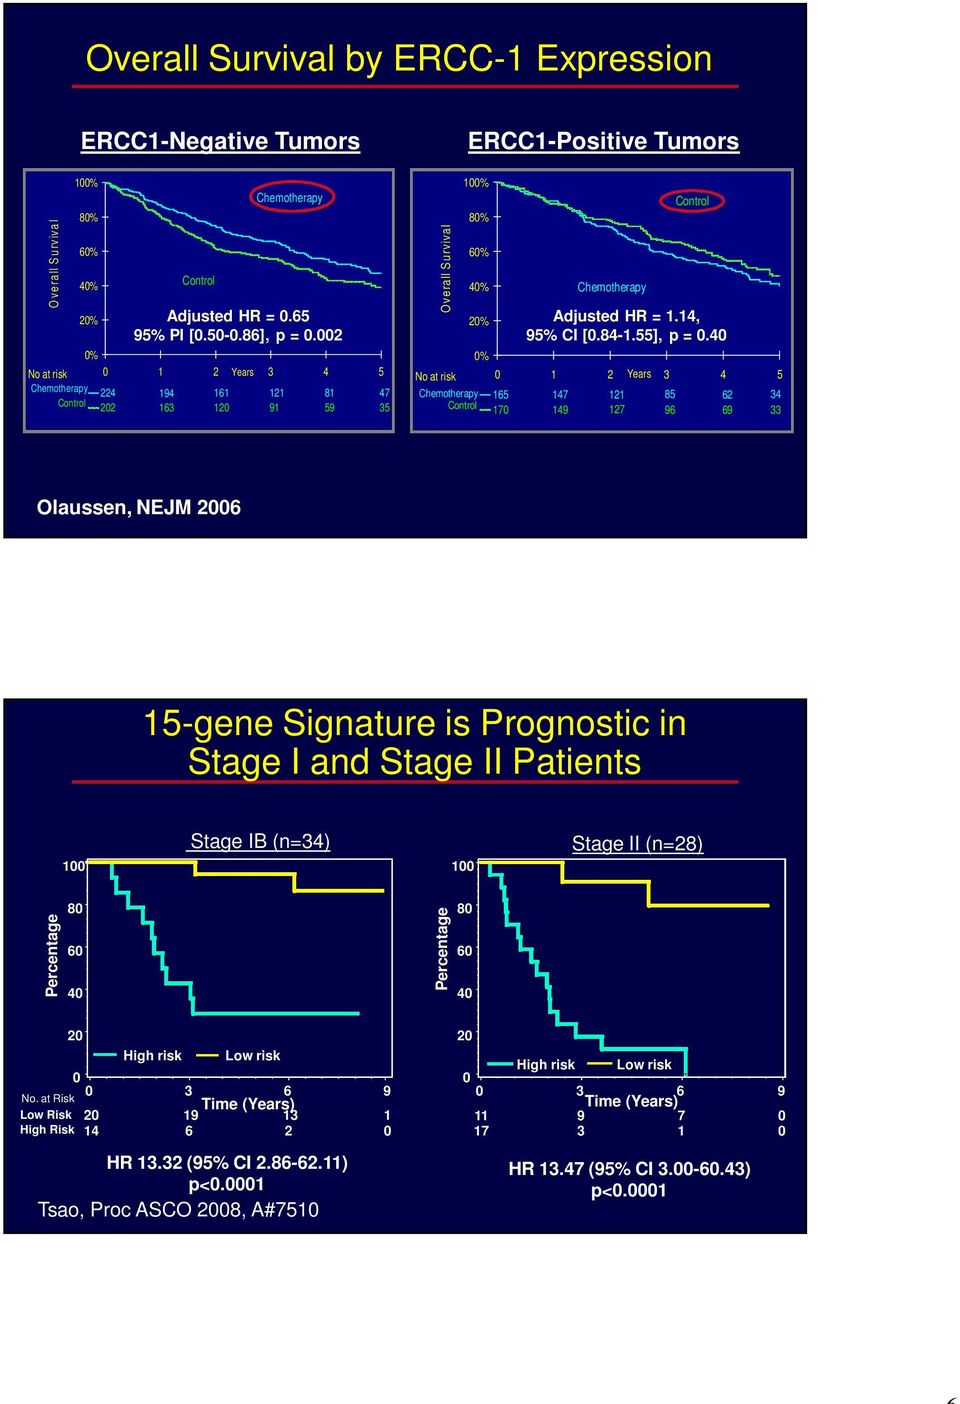 55], p =.4 62 6 4 Olaussen, NEJM 26 5-gene Signature is Prognostic in Stage I and Stage II Patients Stage IB (n=4) Stage II (n=28) Percentage 8 6 4 Percentage 8 6 4 2 No.